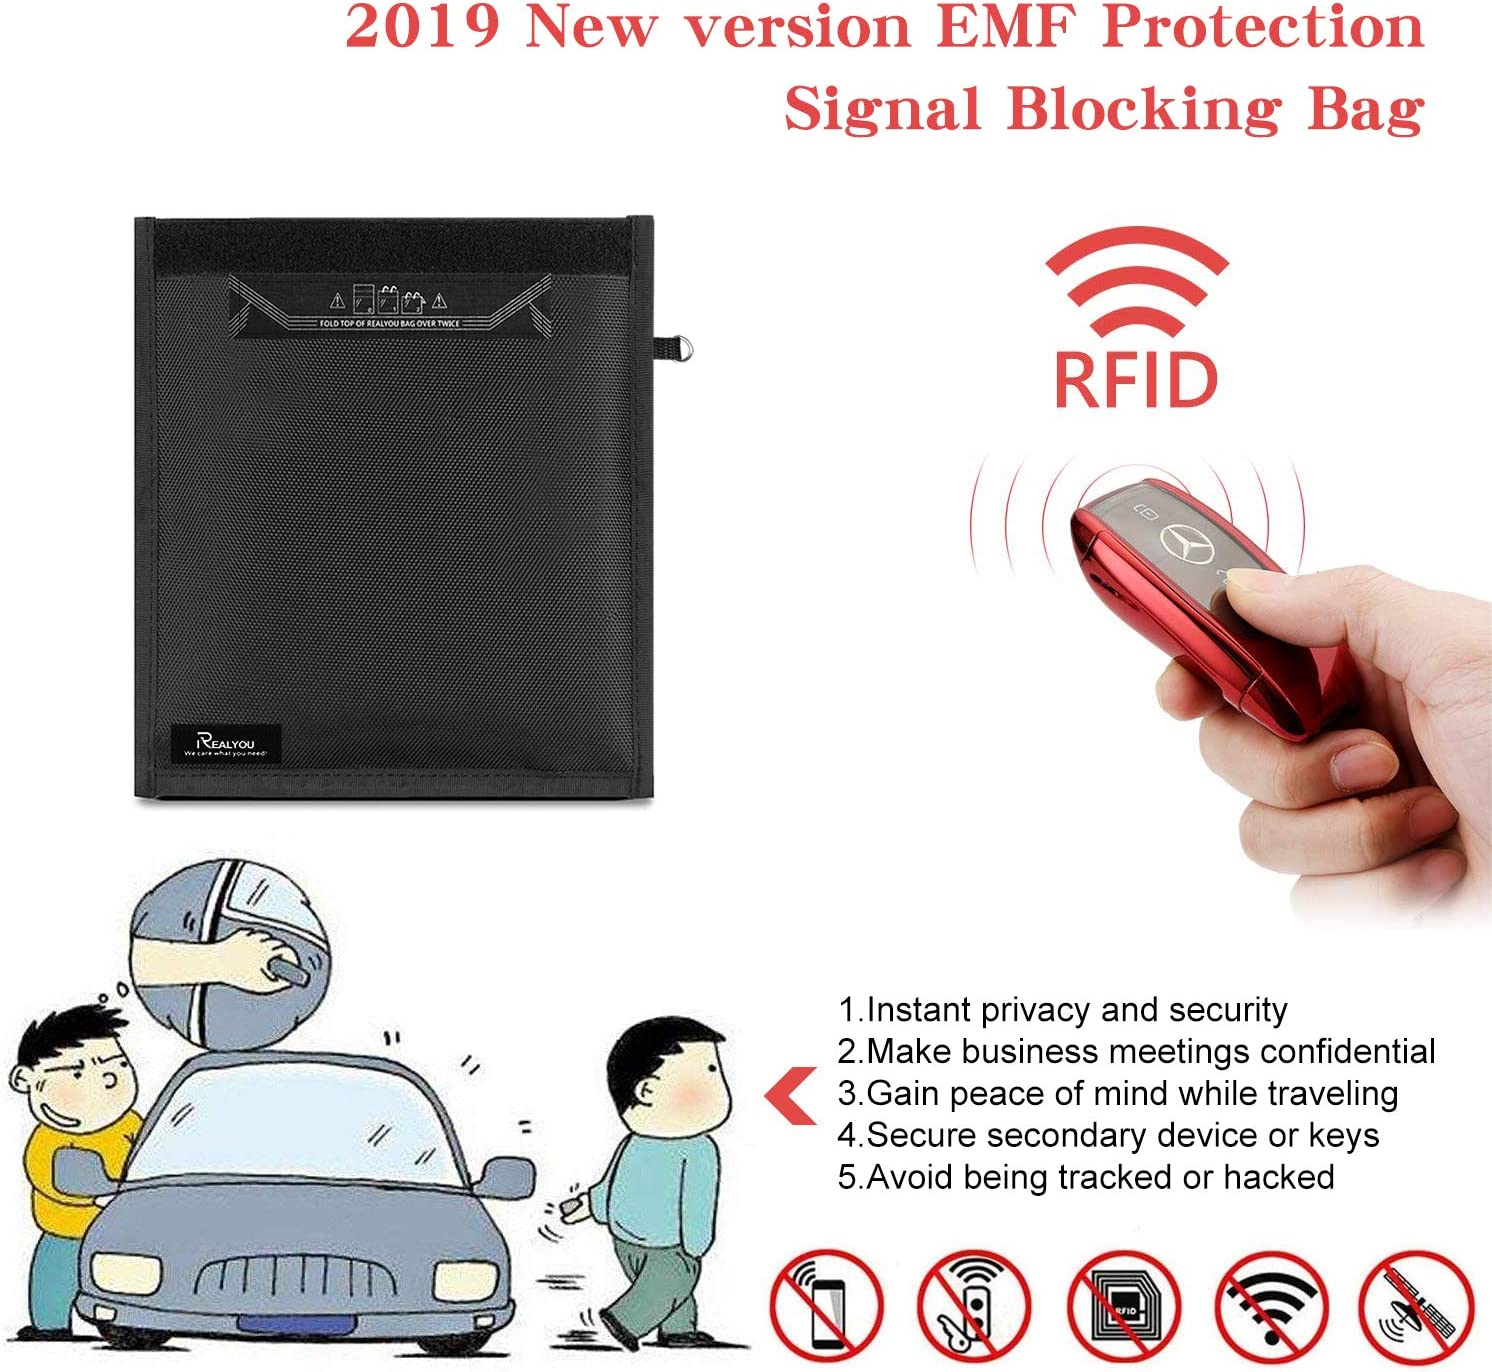 Shields NFC//WiFi//Bluetooth for Phones,Key Fobs and Credit Card Faraday Bag,Signal Isolation Bag,Shield Your Phone//ipad from Hacking,Tracking,and EMP Protection Radiation with This Pouch 13.8X17.7